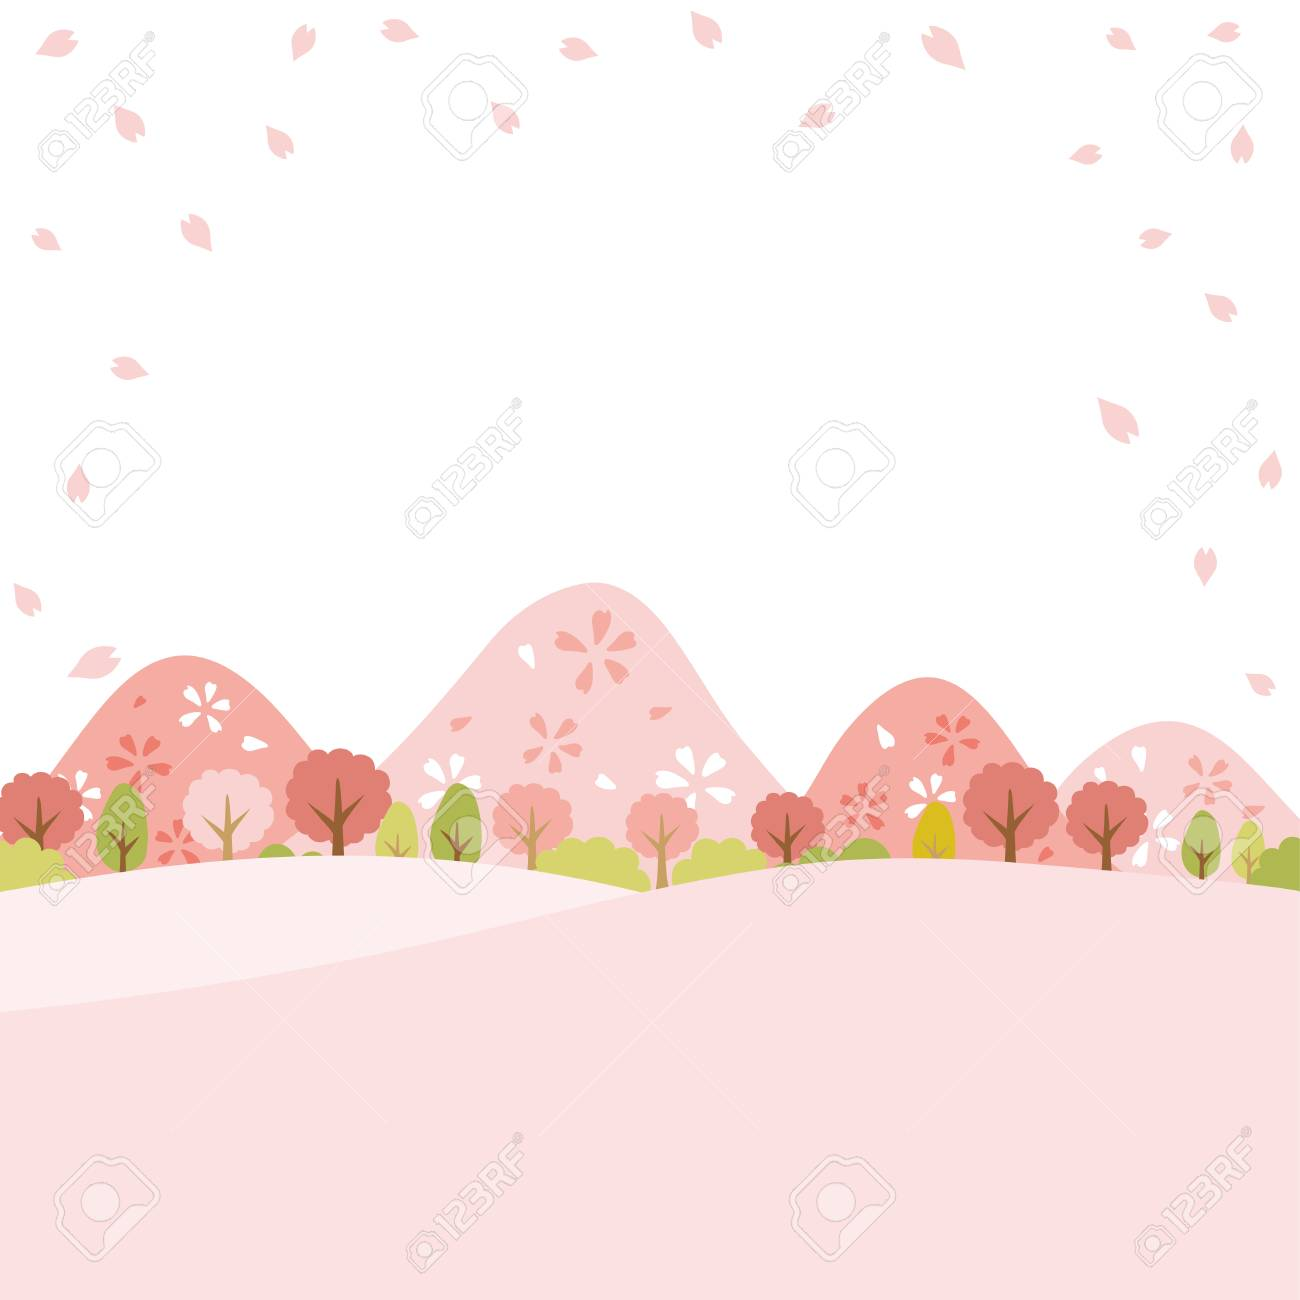 Spring town scape with cherry blossom vector background. - 95125850